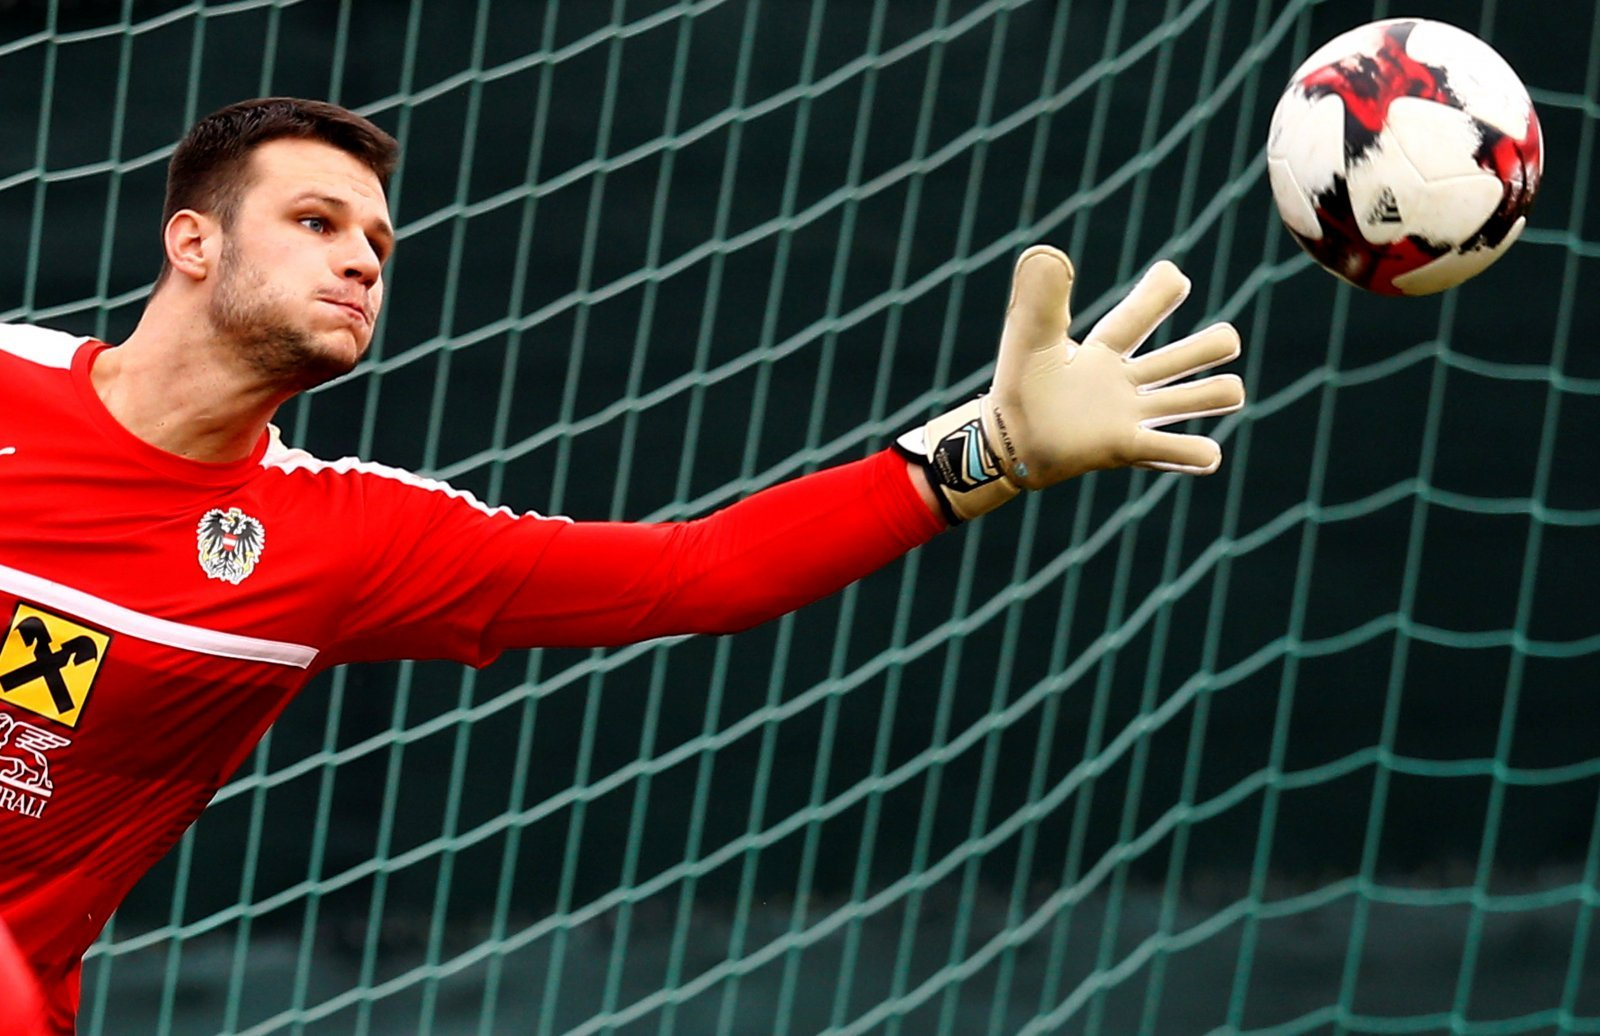 Rangers: Keeper should not be so quick to dismiss Ibrox approach